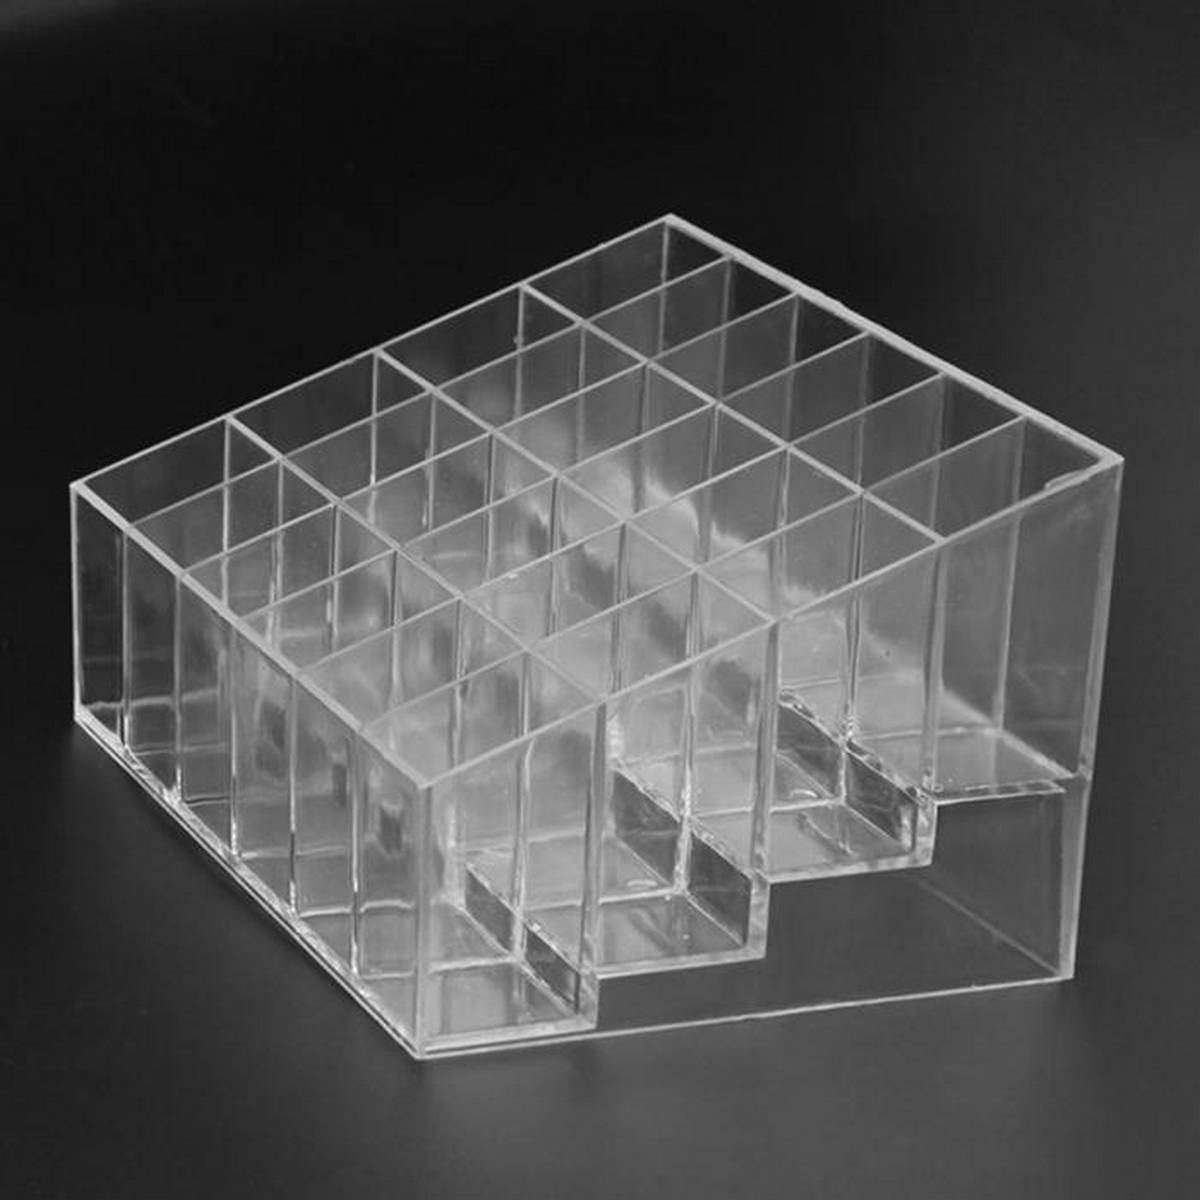 24 Grid Stand Solid Lip Stick Cosmetic Storage Box Organizer Case Makeup Display Holder Transparent Trapezoid Cosmetic Case New 24 Grid Acrylic Makeup Organizer Storage Box Cosmetic Box Lipstick Jewelry Box Case Holder Display